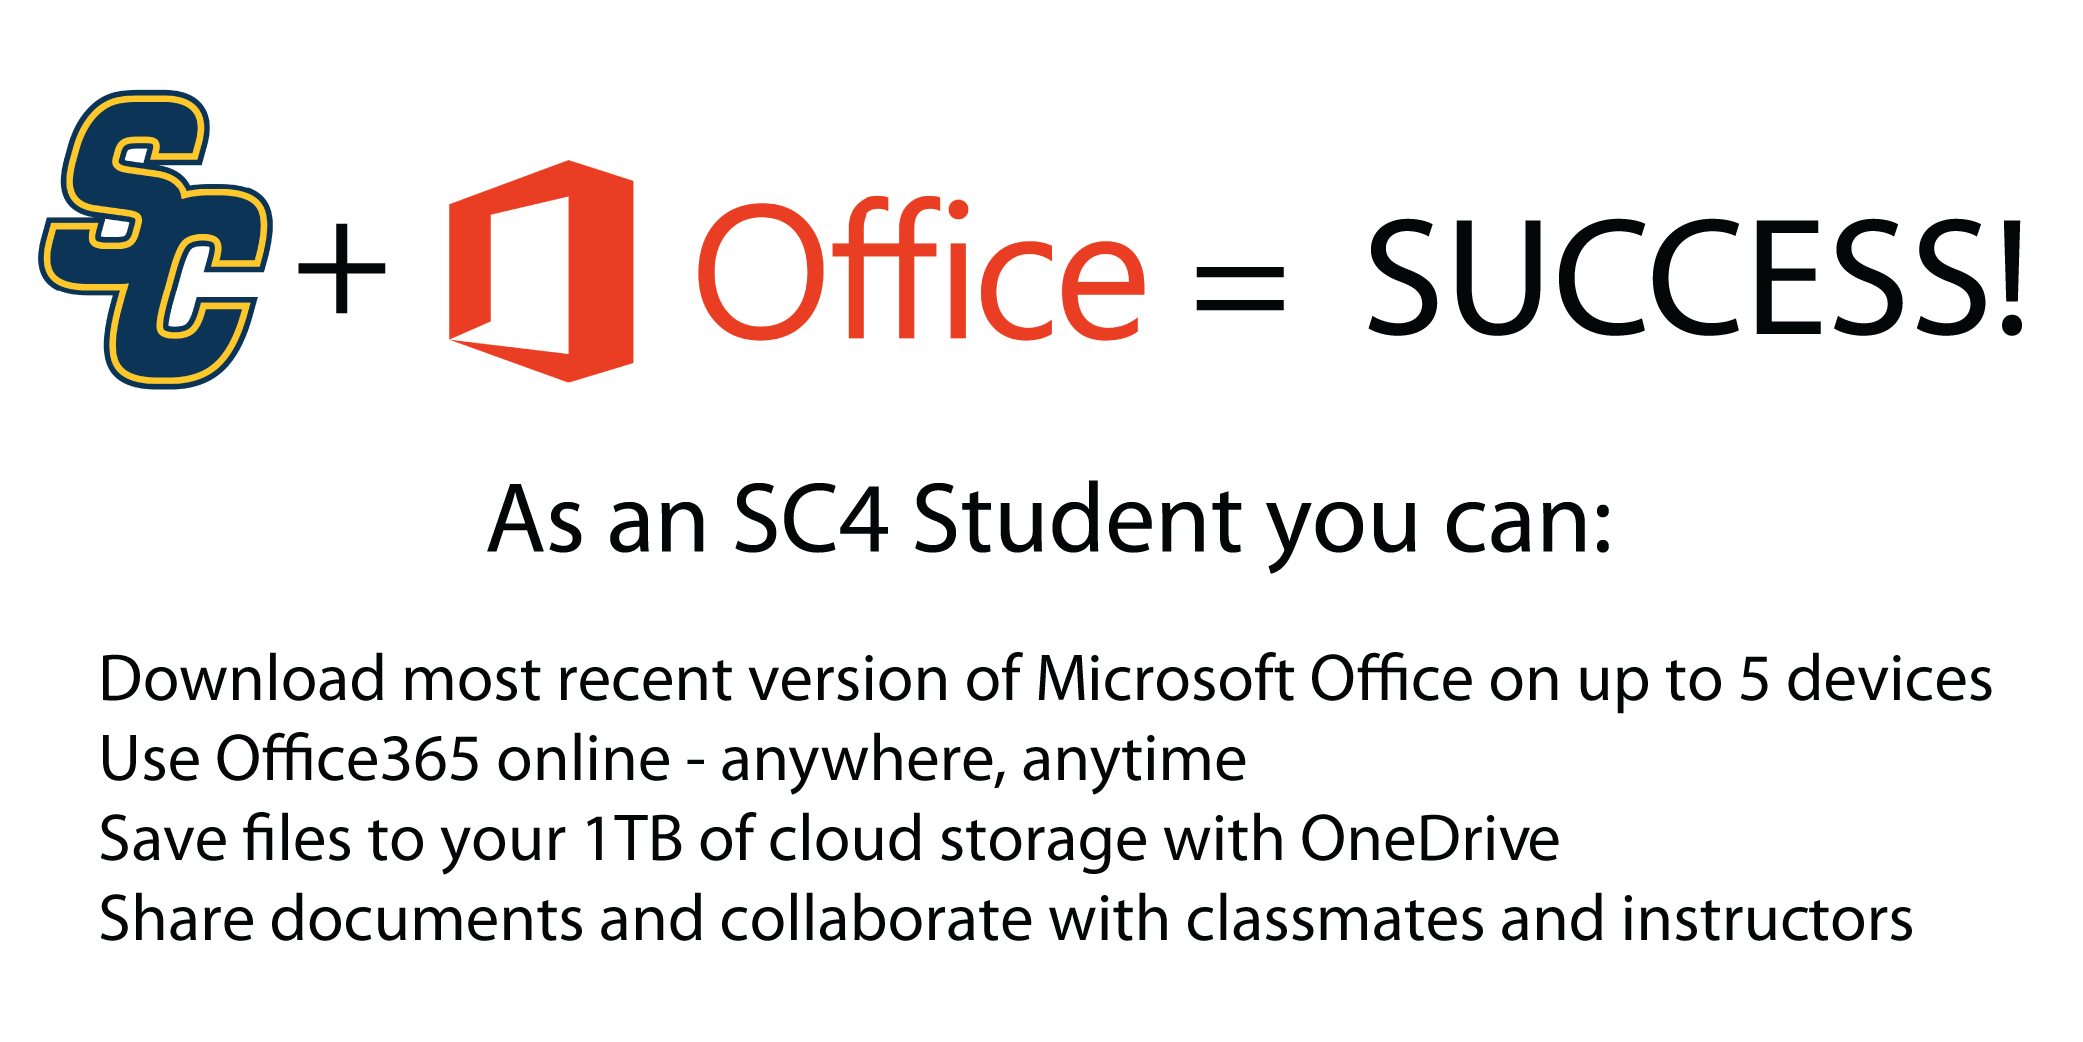 log into Office 365 services